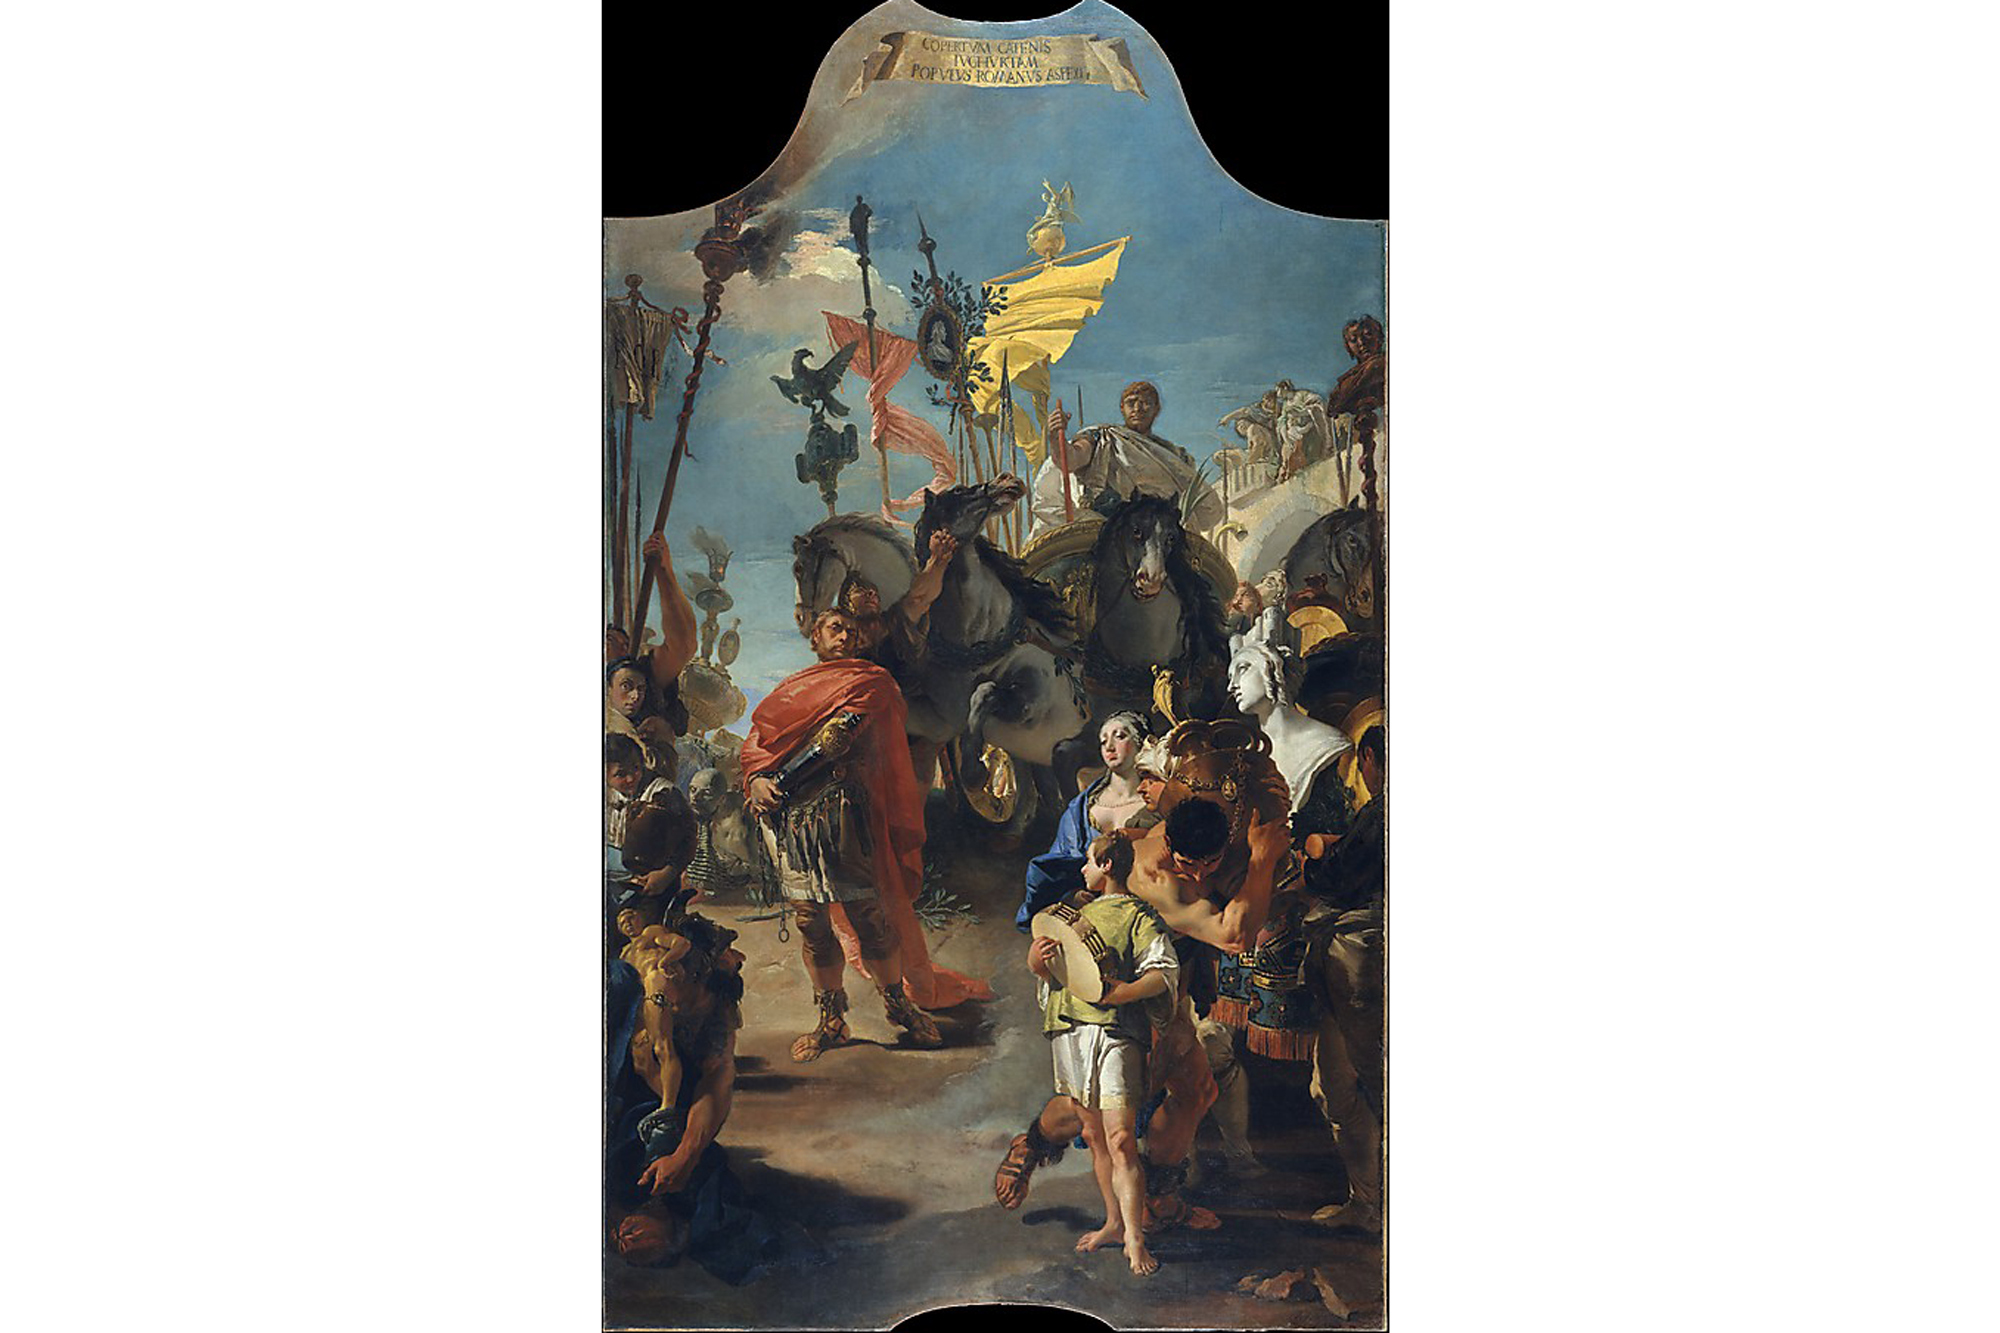 Giovanni Battista Tiepolo, The Triumph of Marius (1729)